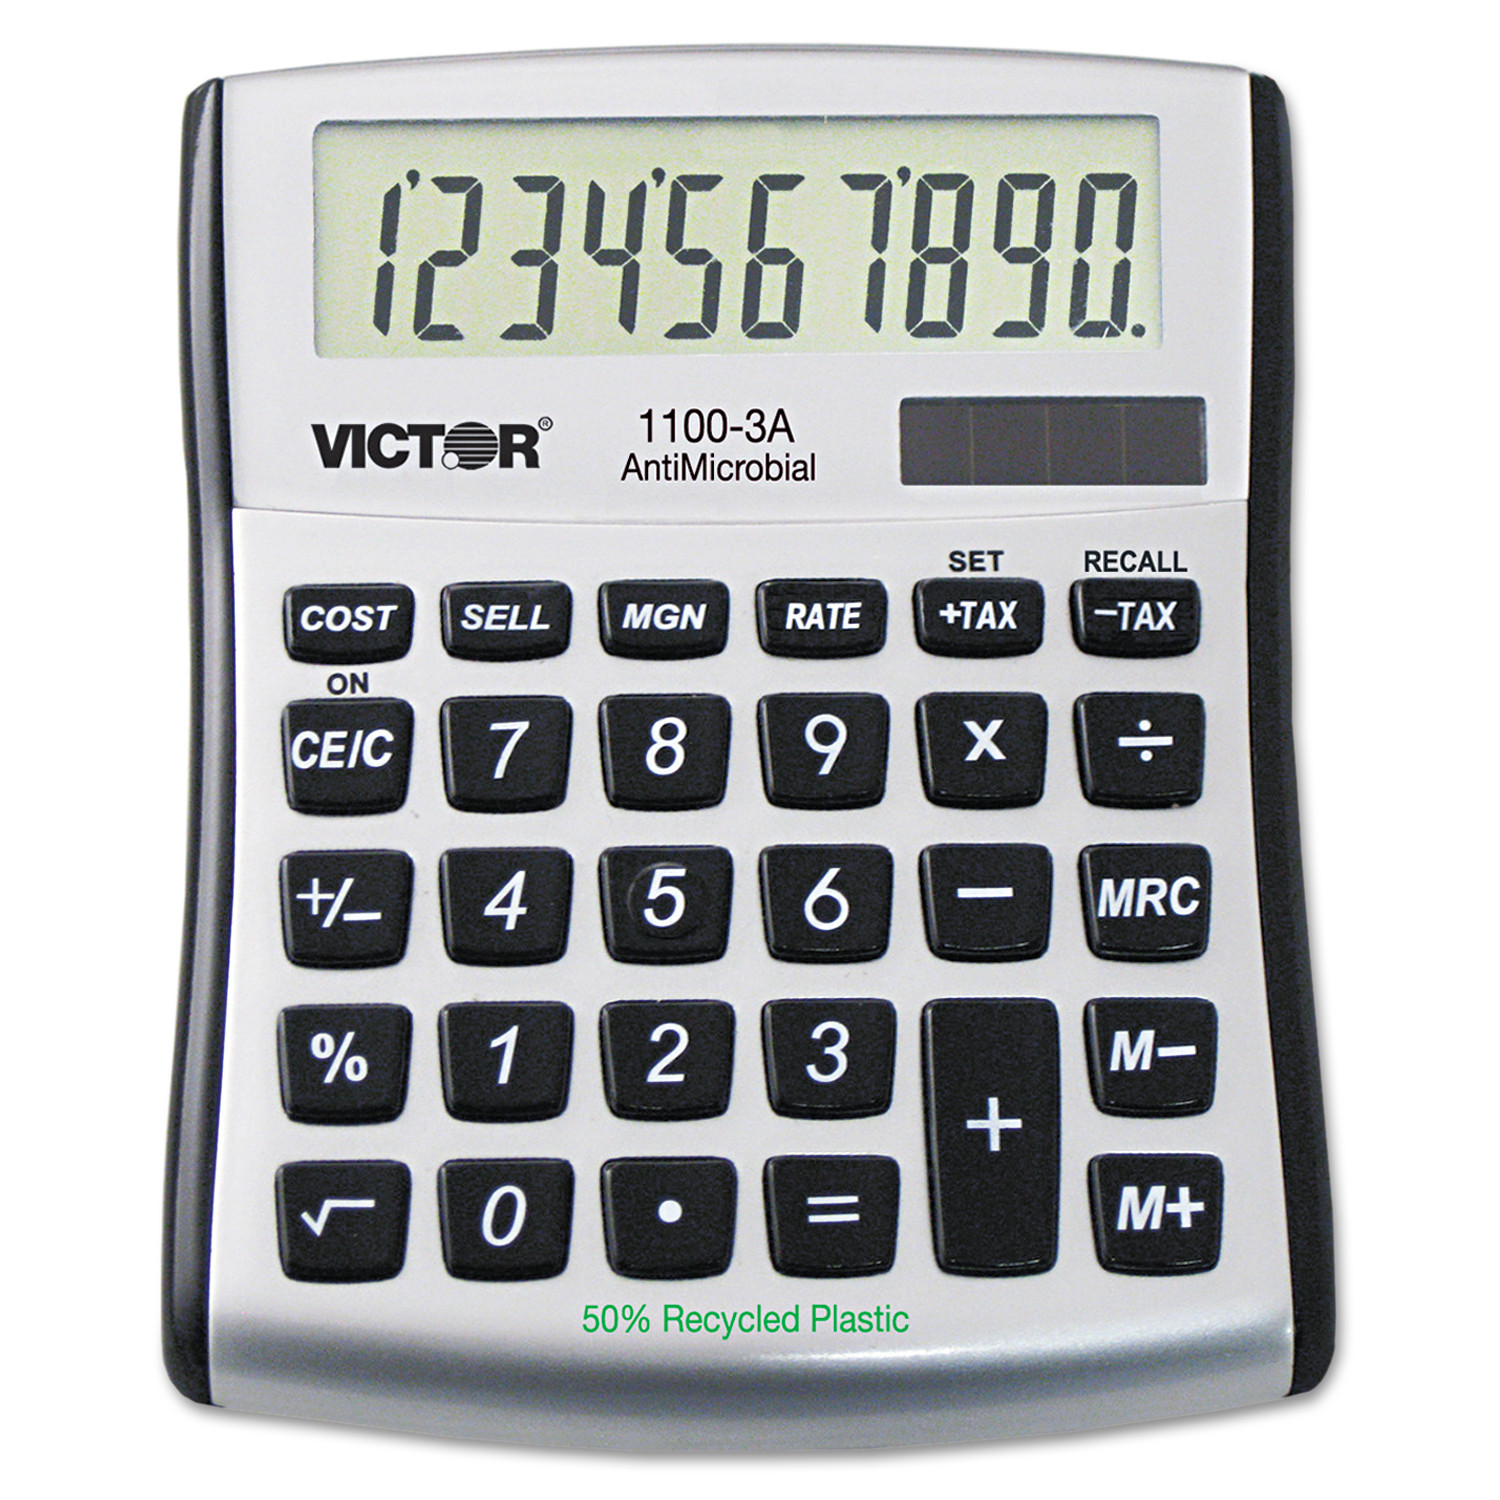 Victor 1100-3A Antimicrobial Compact Desktop Calculator, 10-Digit LCD -VCT11003A